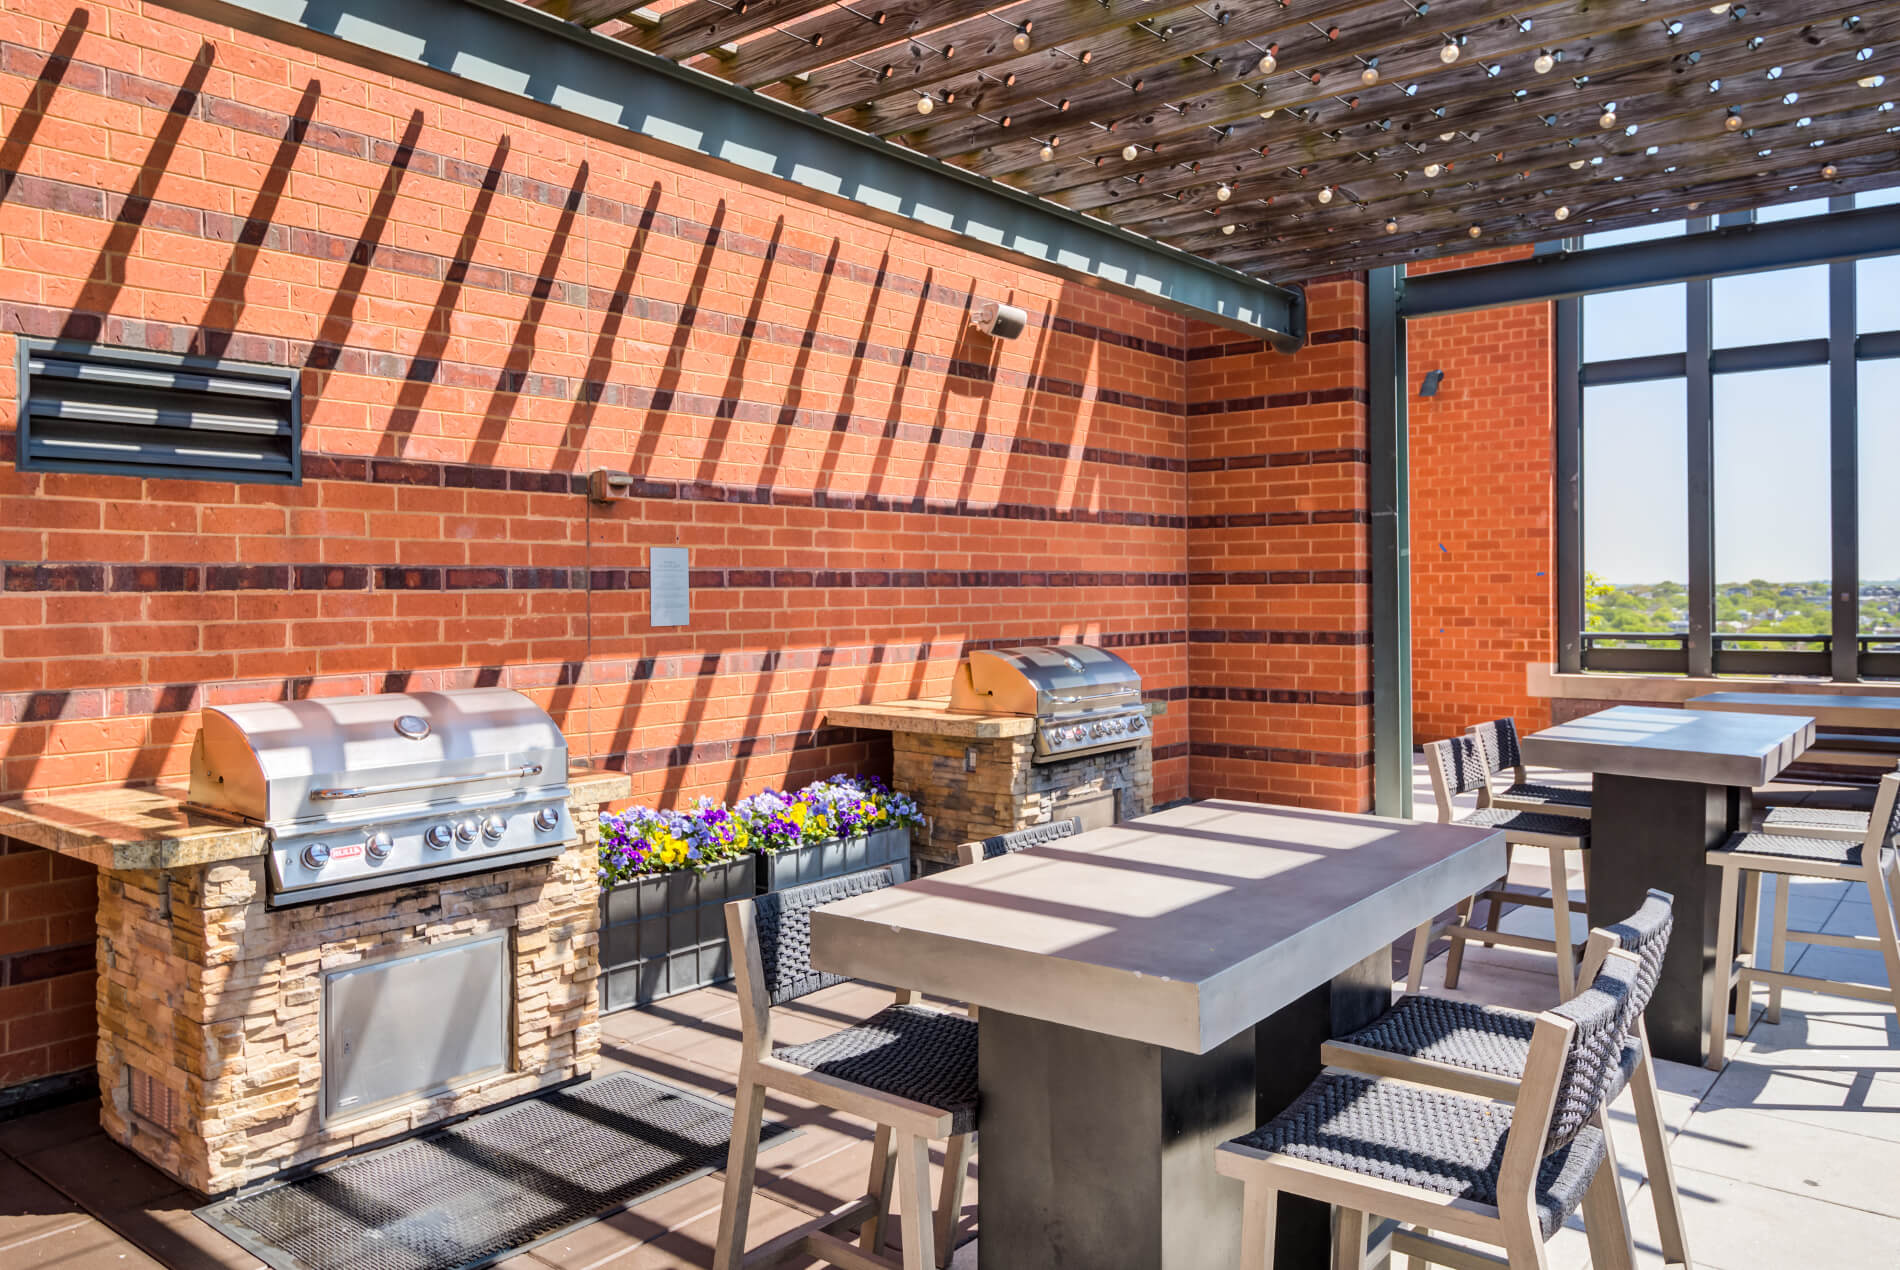 Two grilling stations with adjoining tables